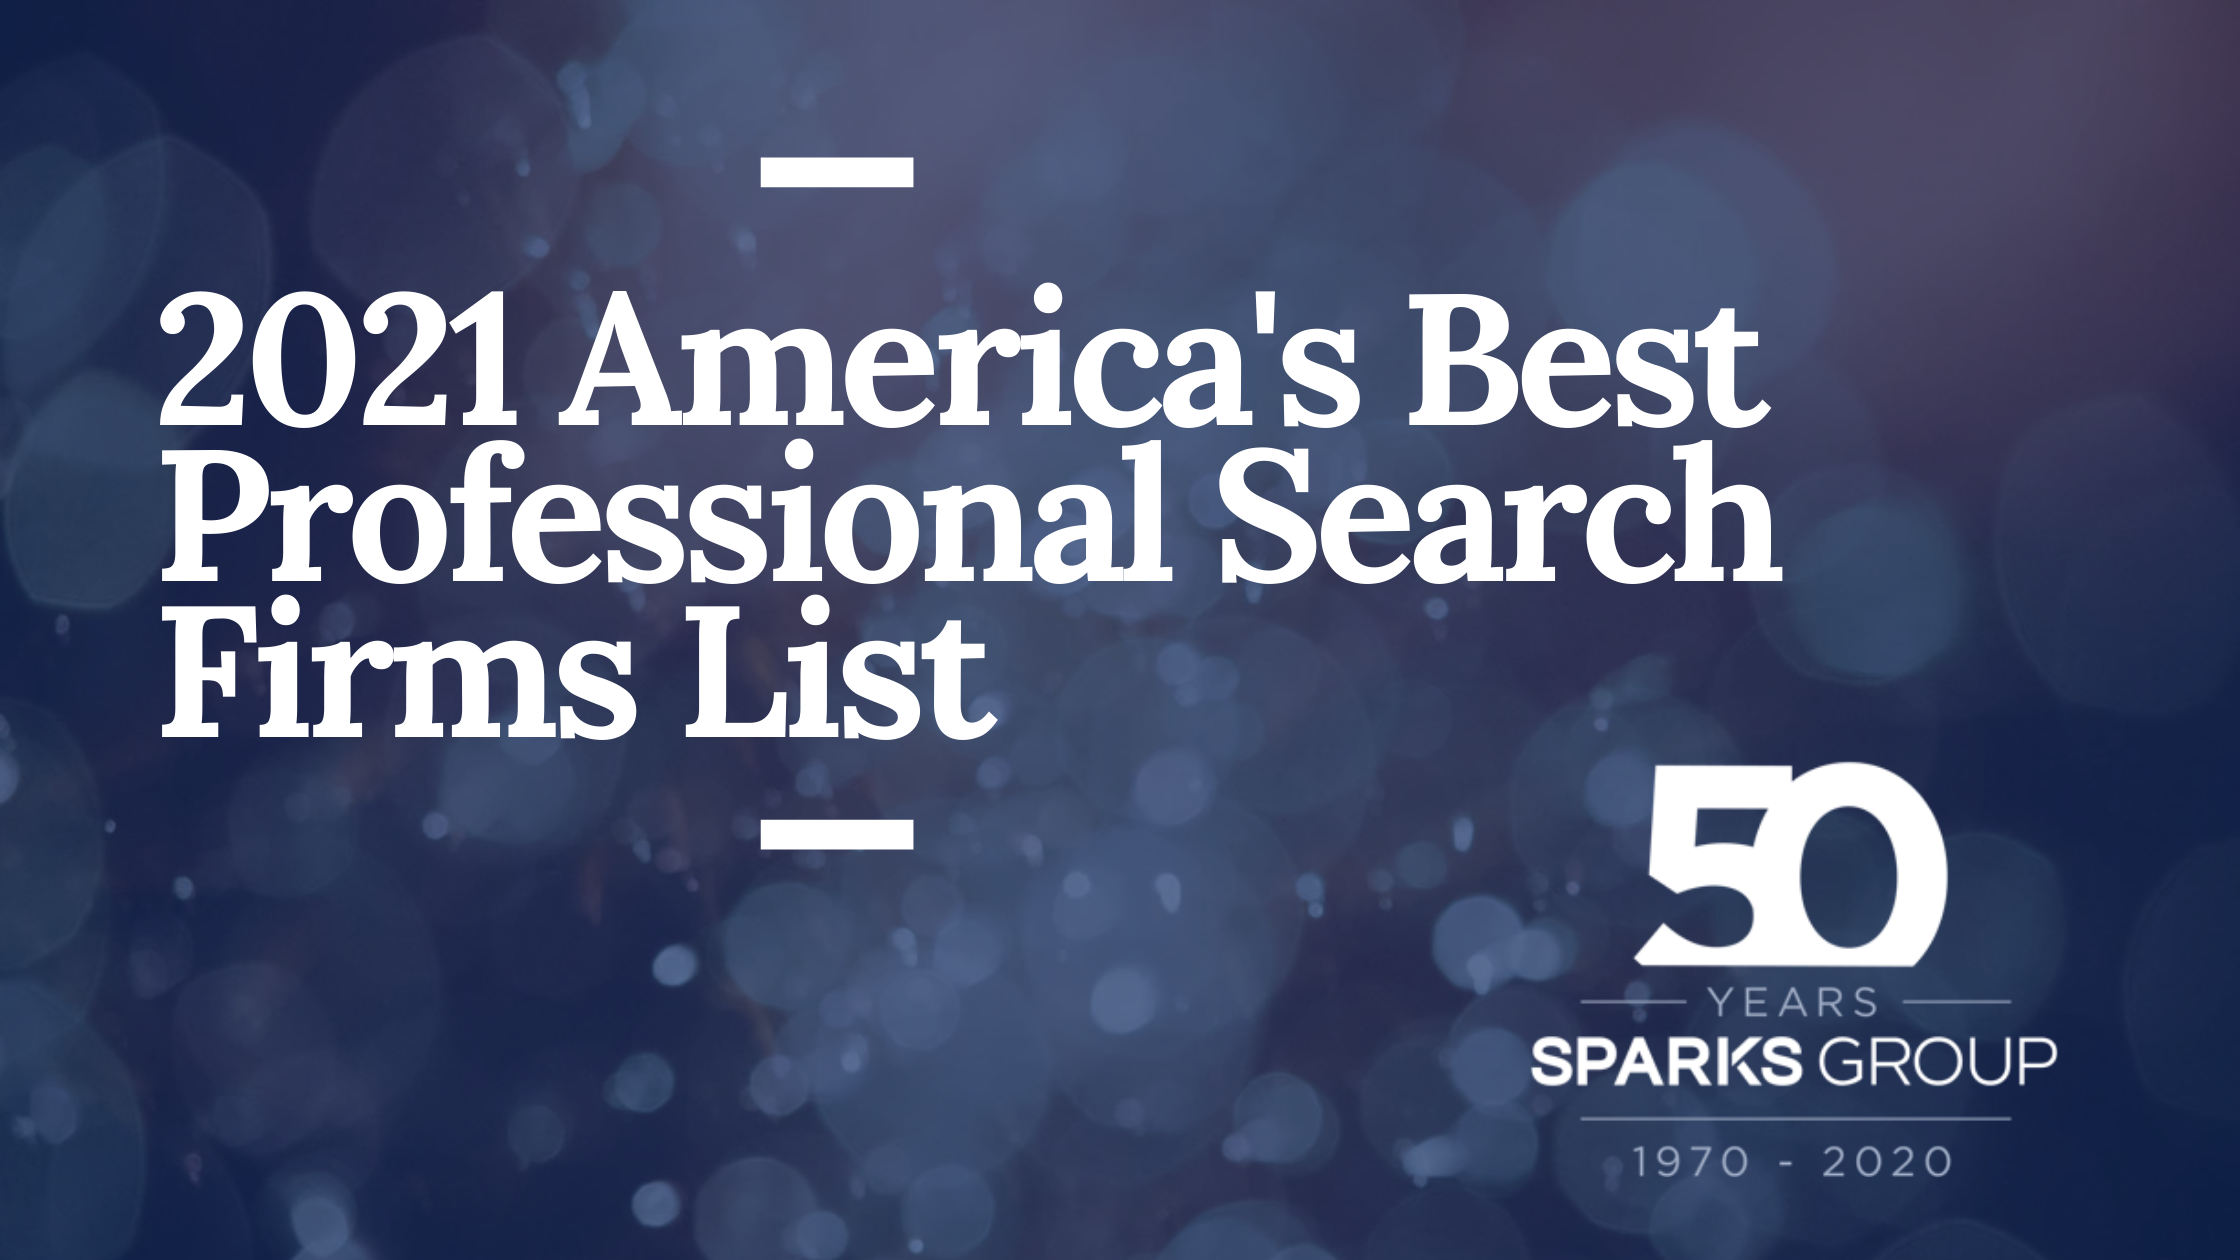 2021 Americas Best Professional Search Firms List_Sparks Group